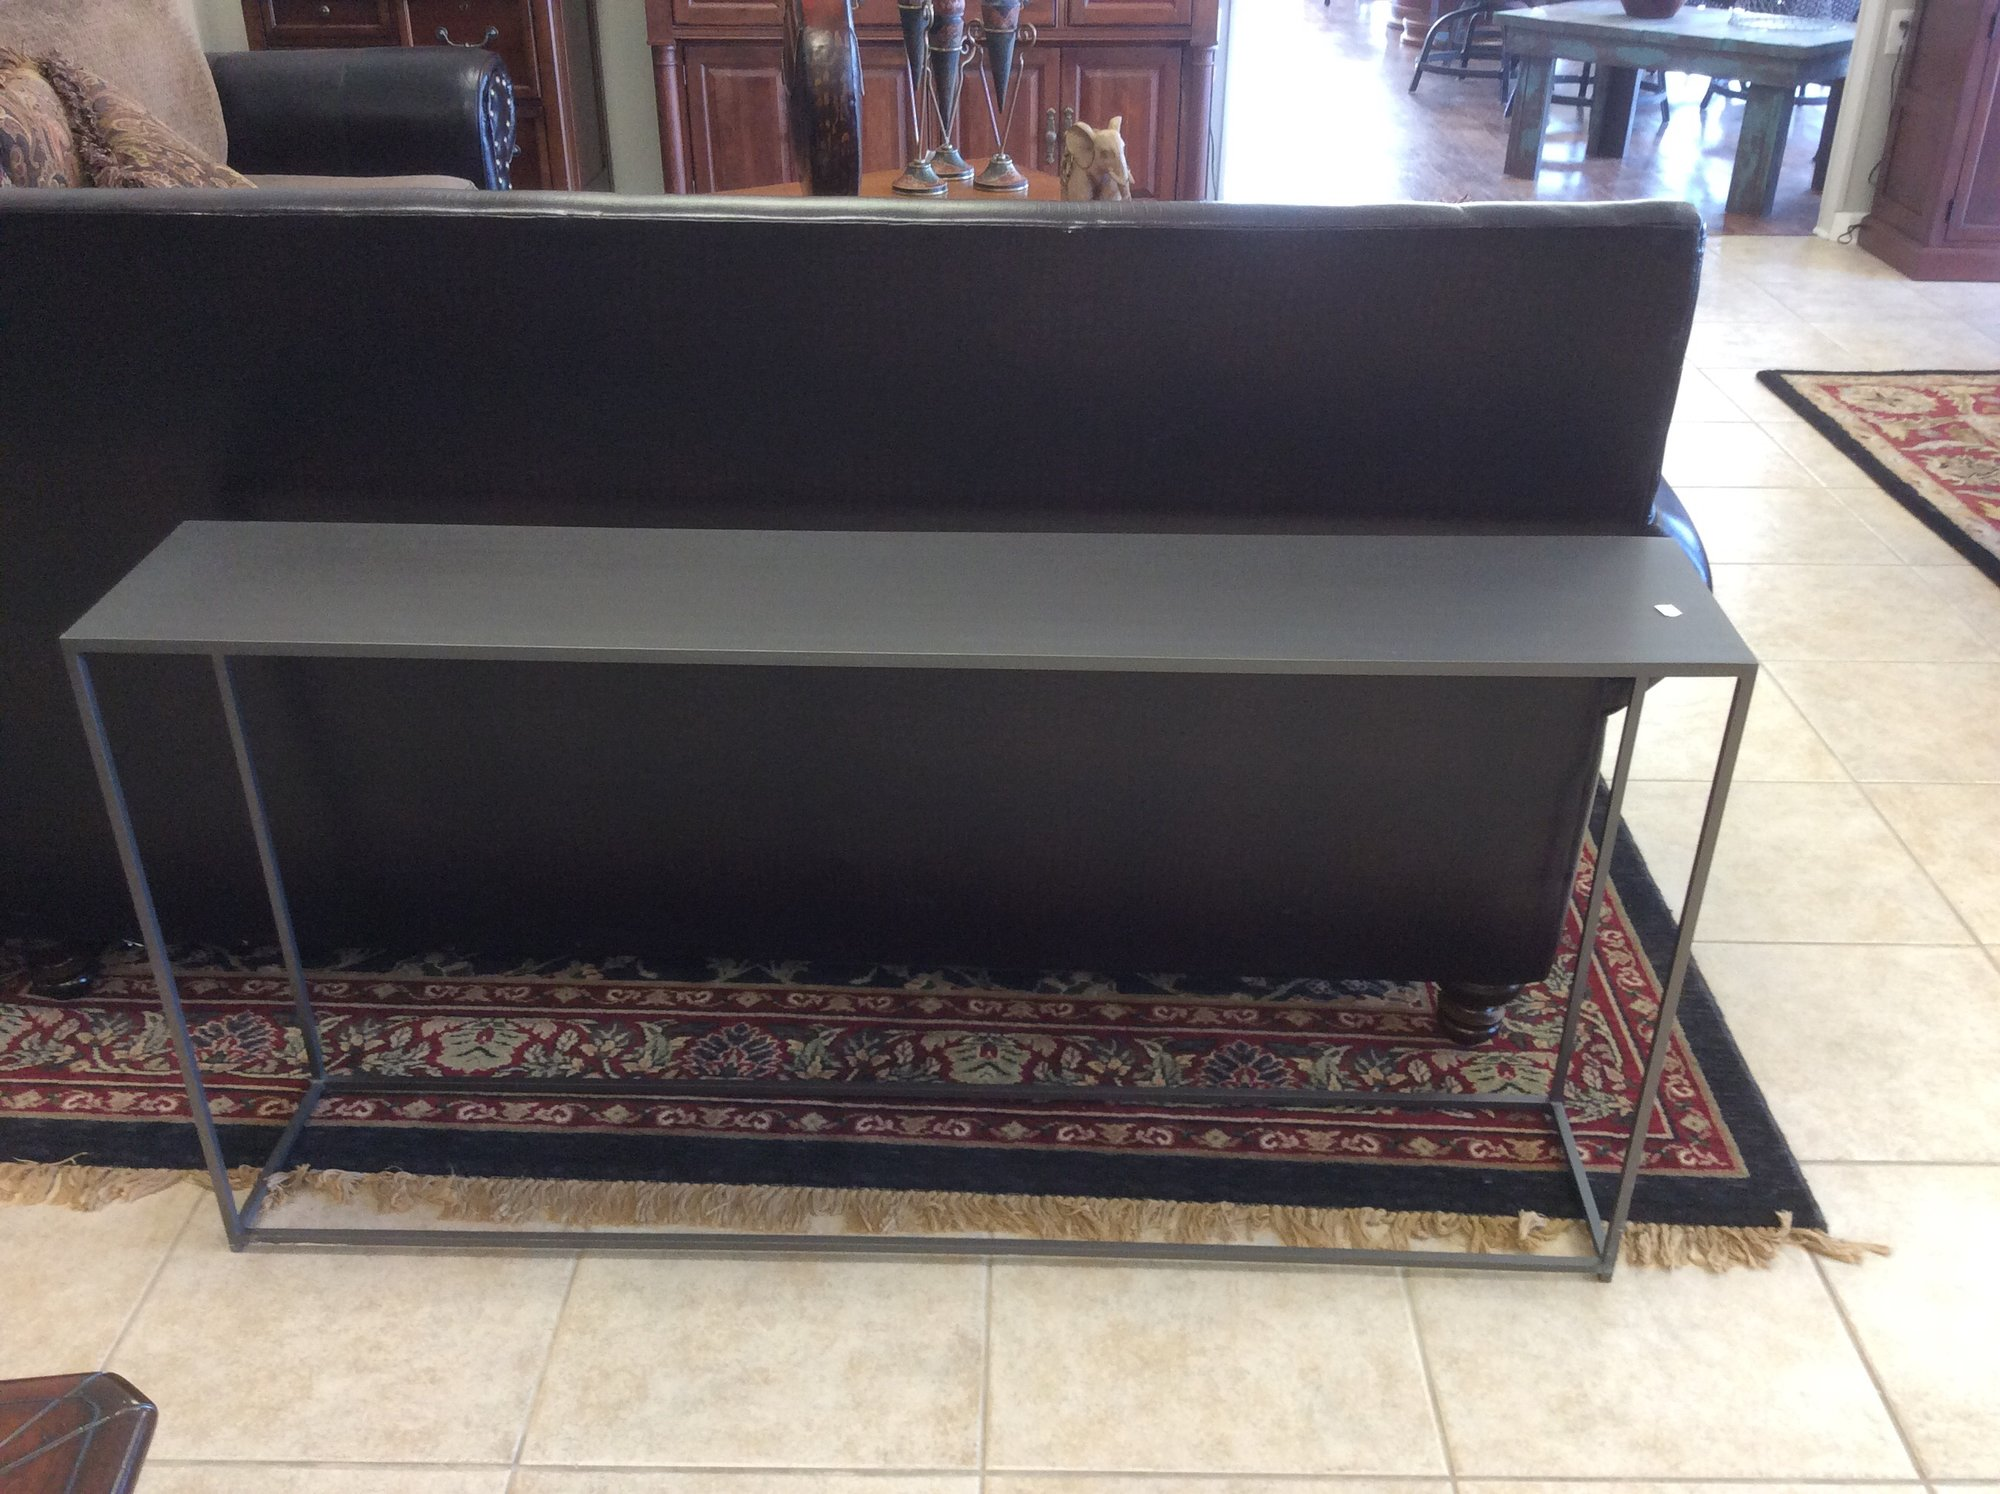 CB Steel Ind Sofa Table Riverbridge Resale Consignment - Cb2 sofa table